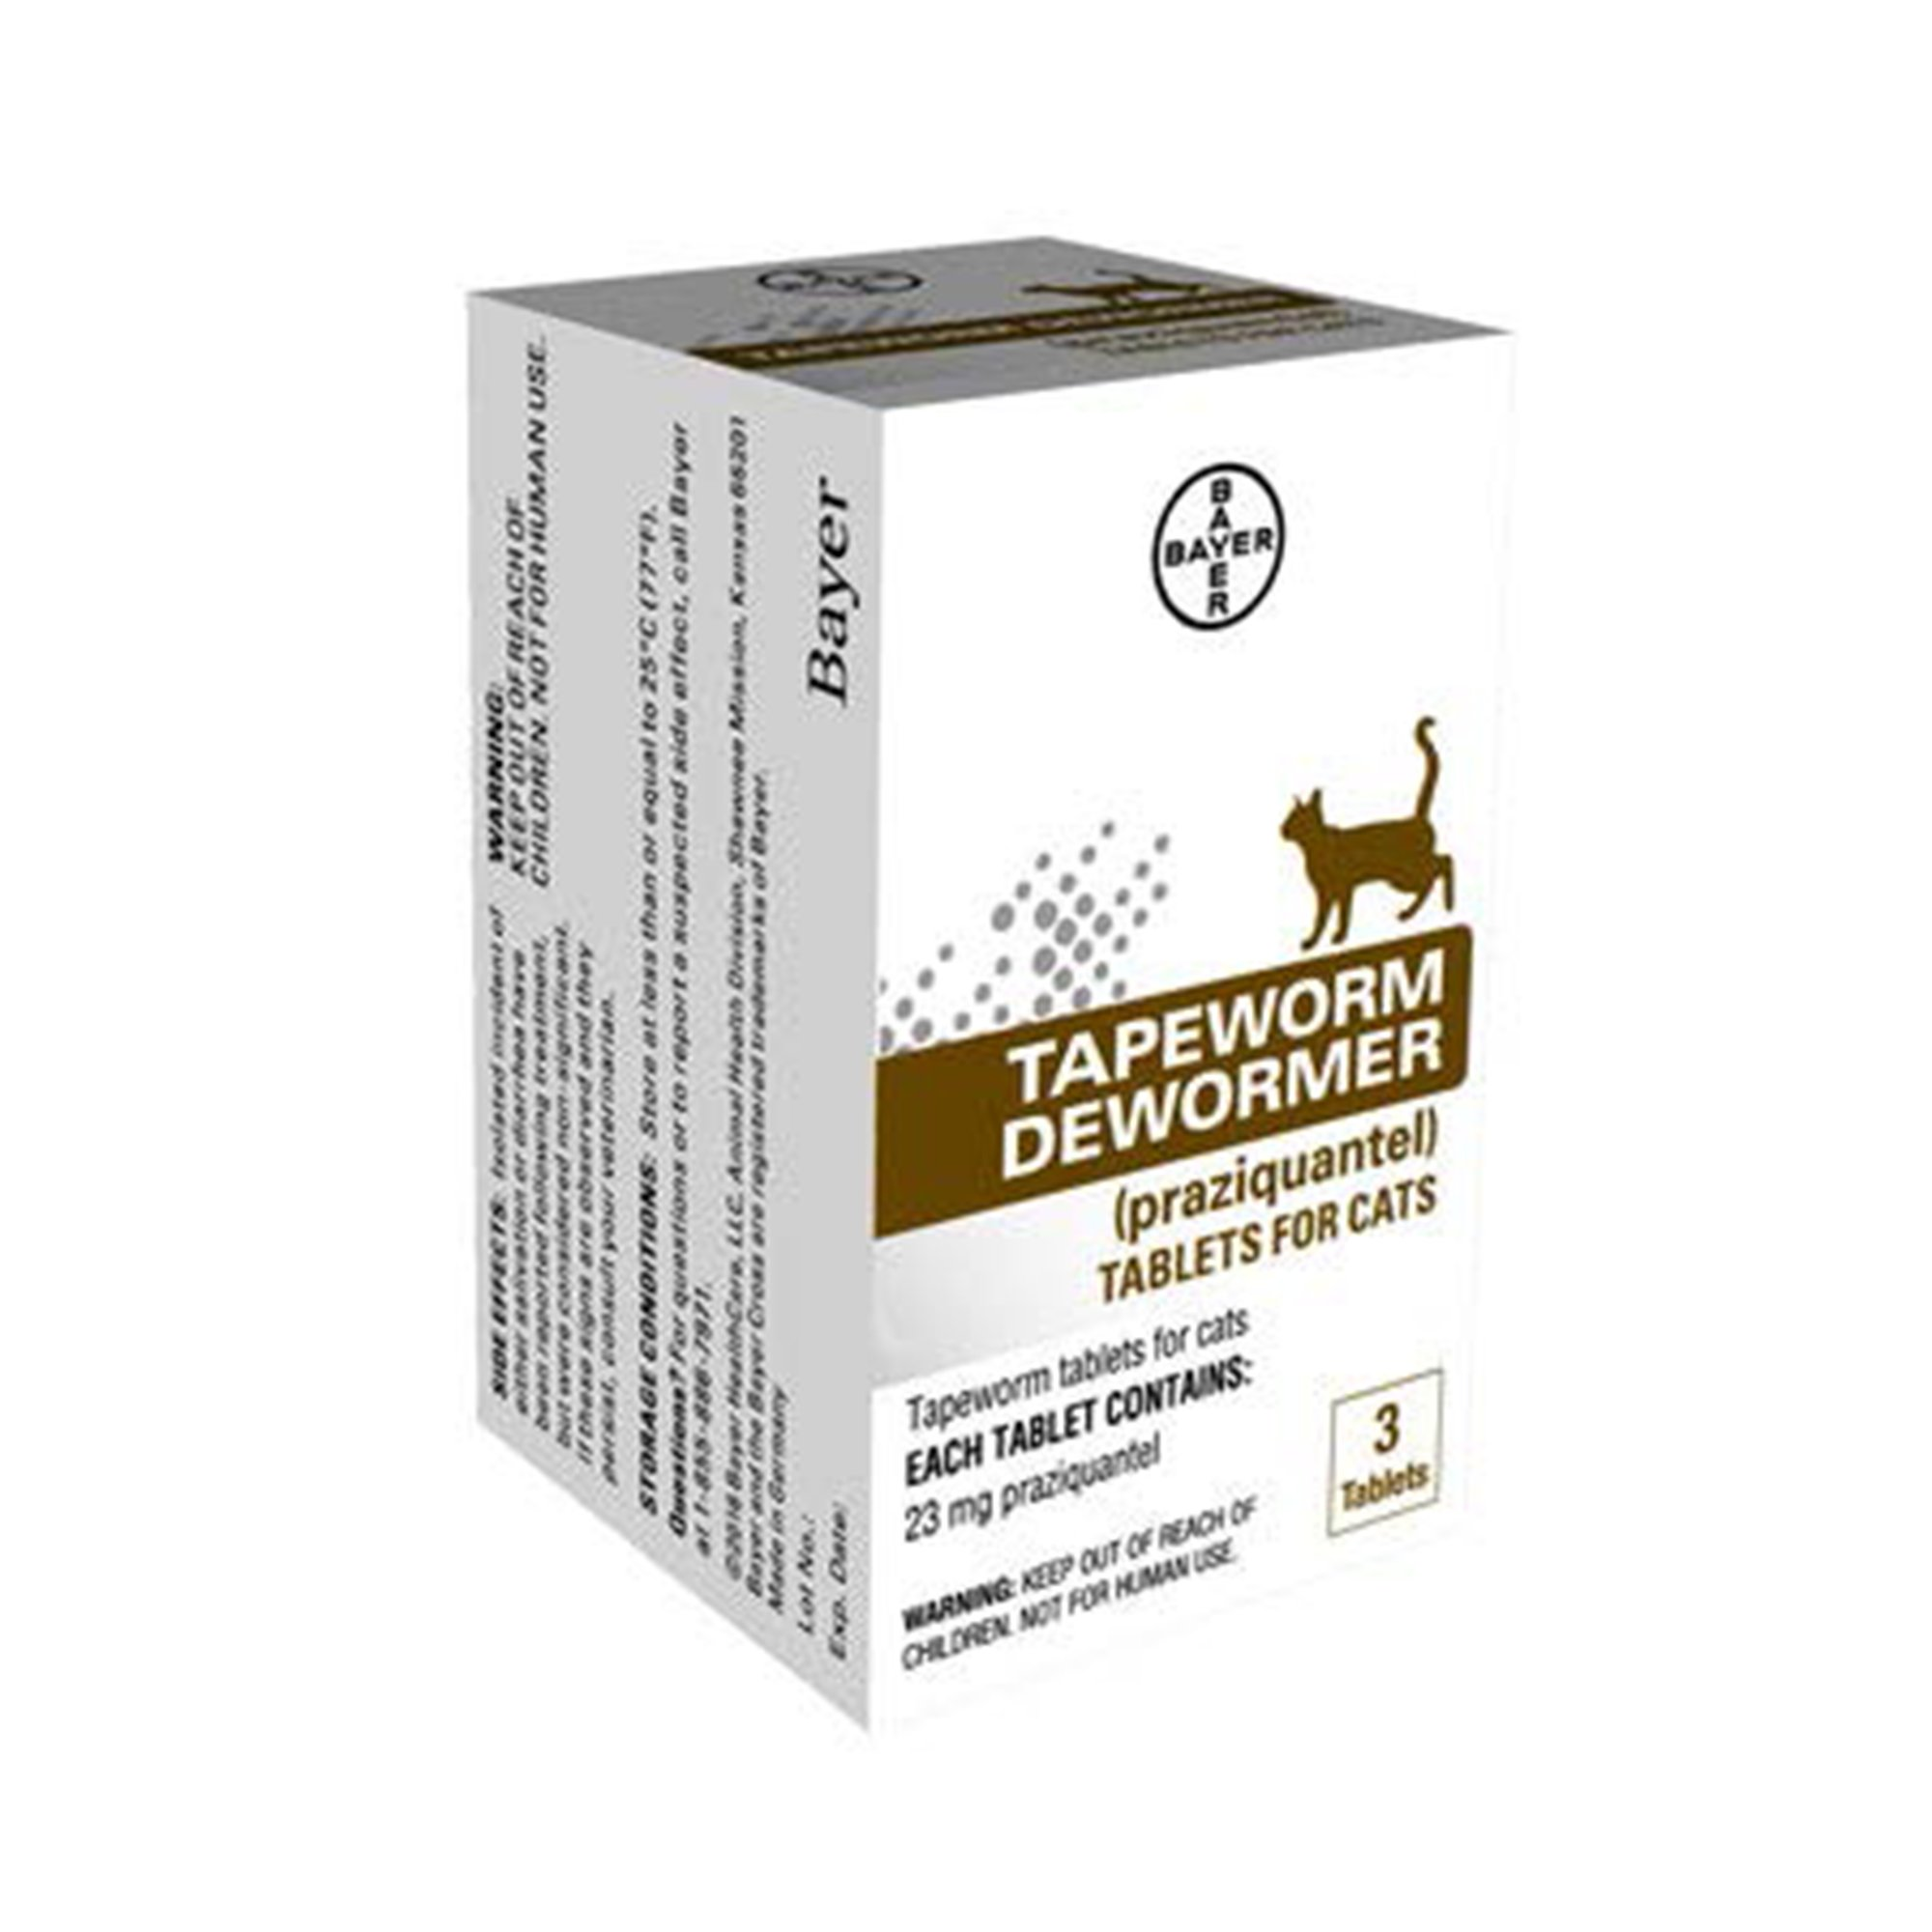 otc cat dewormer bayer tapeworm dewormer tablets for cats petco 1283